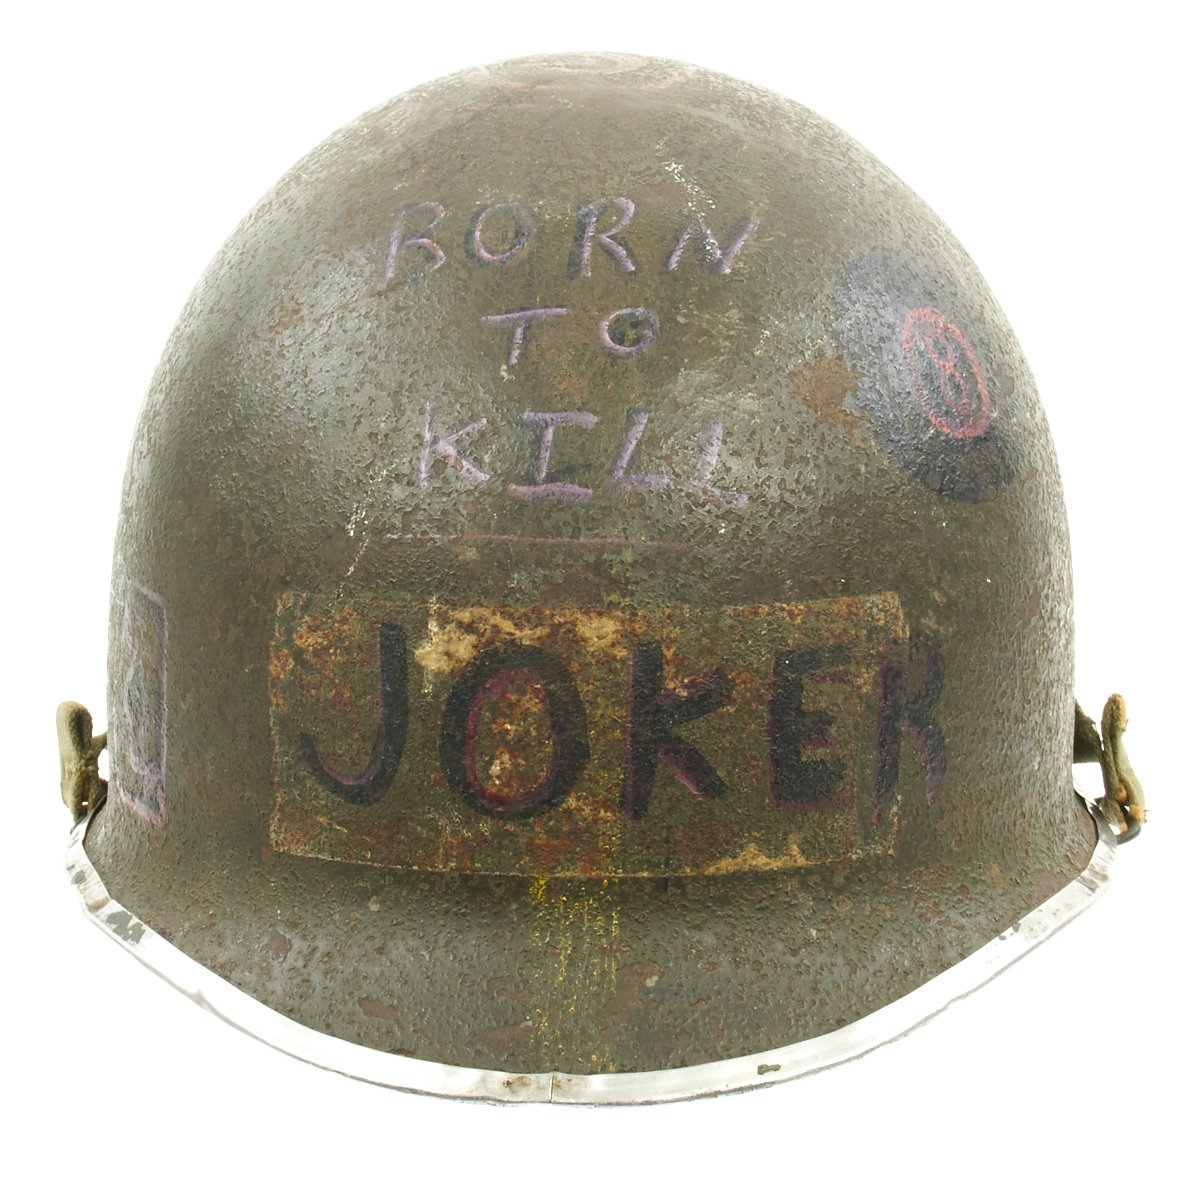 Original U S Wwii Vietnam War Born To Kill M1 Helmet With Westinghouse Liner International Military Antiques